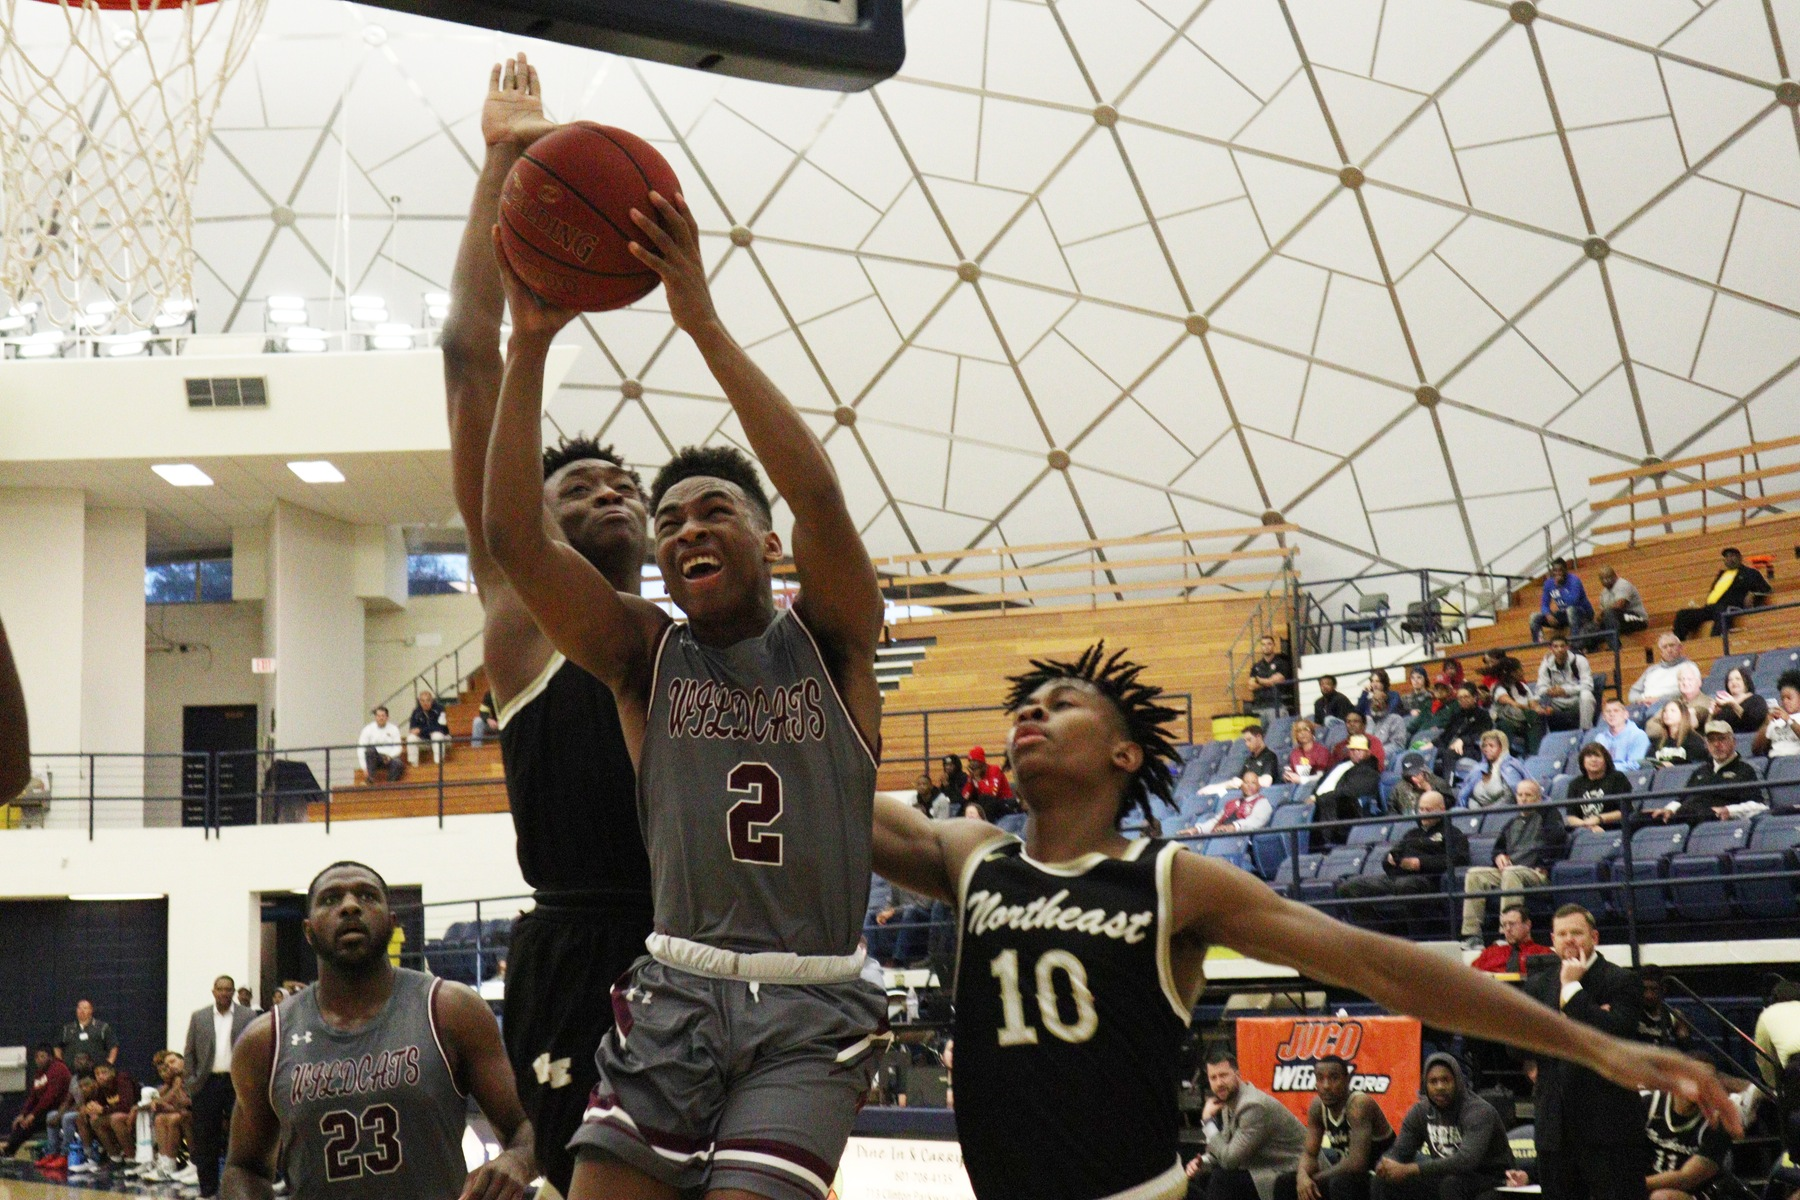 No. 15 Pearl River had a return to form Wednesday, March 6, 2019, topping Northeast 78-43 in the first round of the Region XXIII Tournament, hosted at Mississippi College in Clinton, Miss. (PATRICK OCHS/PRCC ATHLETICS)